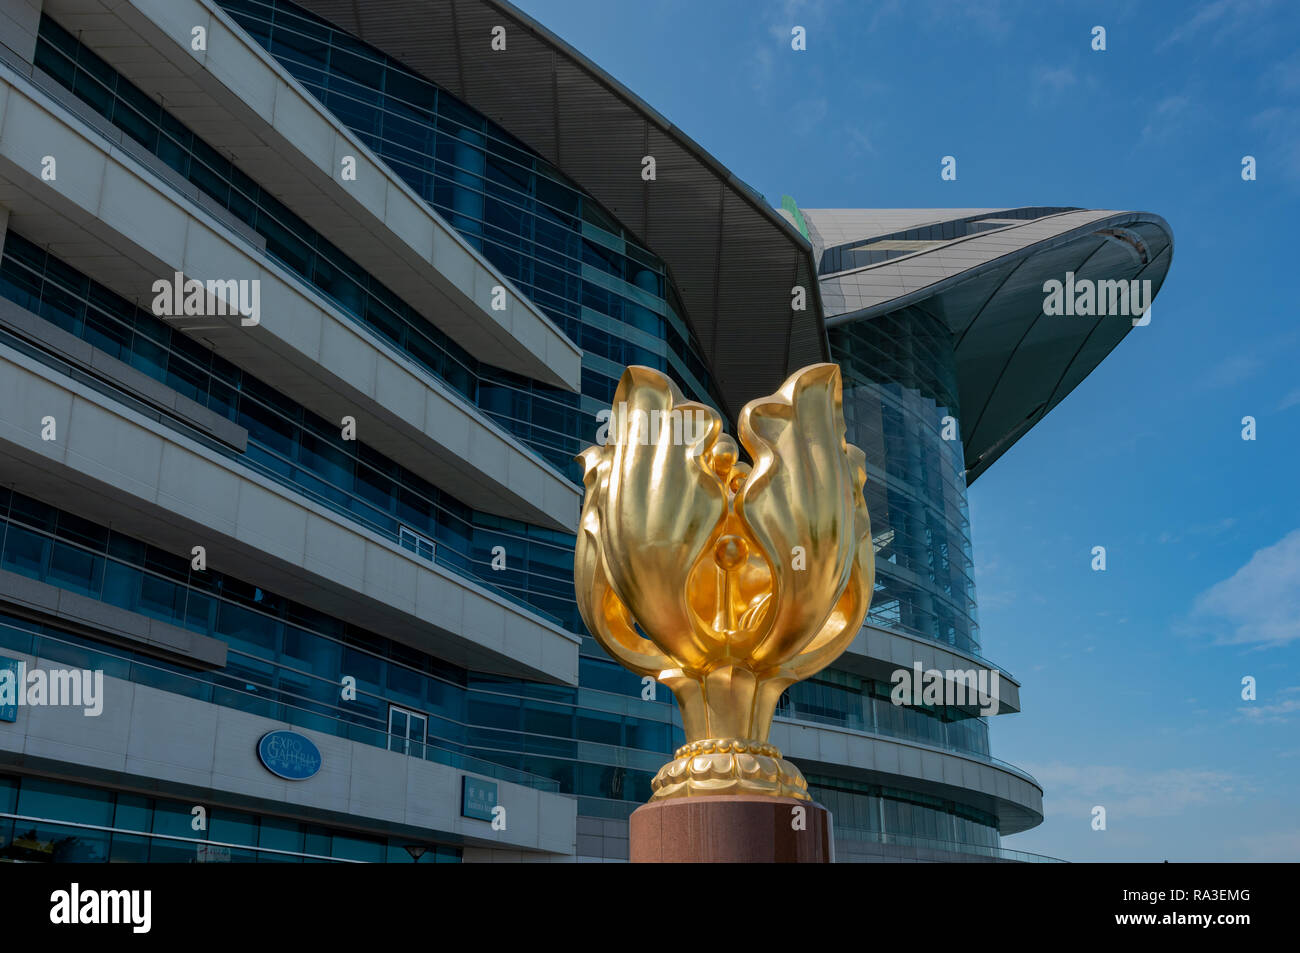 The Golden Bauhinia statue in front of the Hong Kong Convention and Exhibition Centre - Stock Image